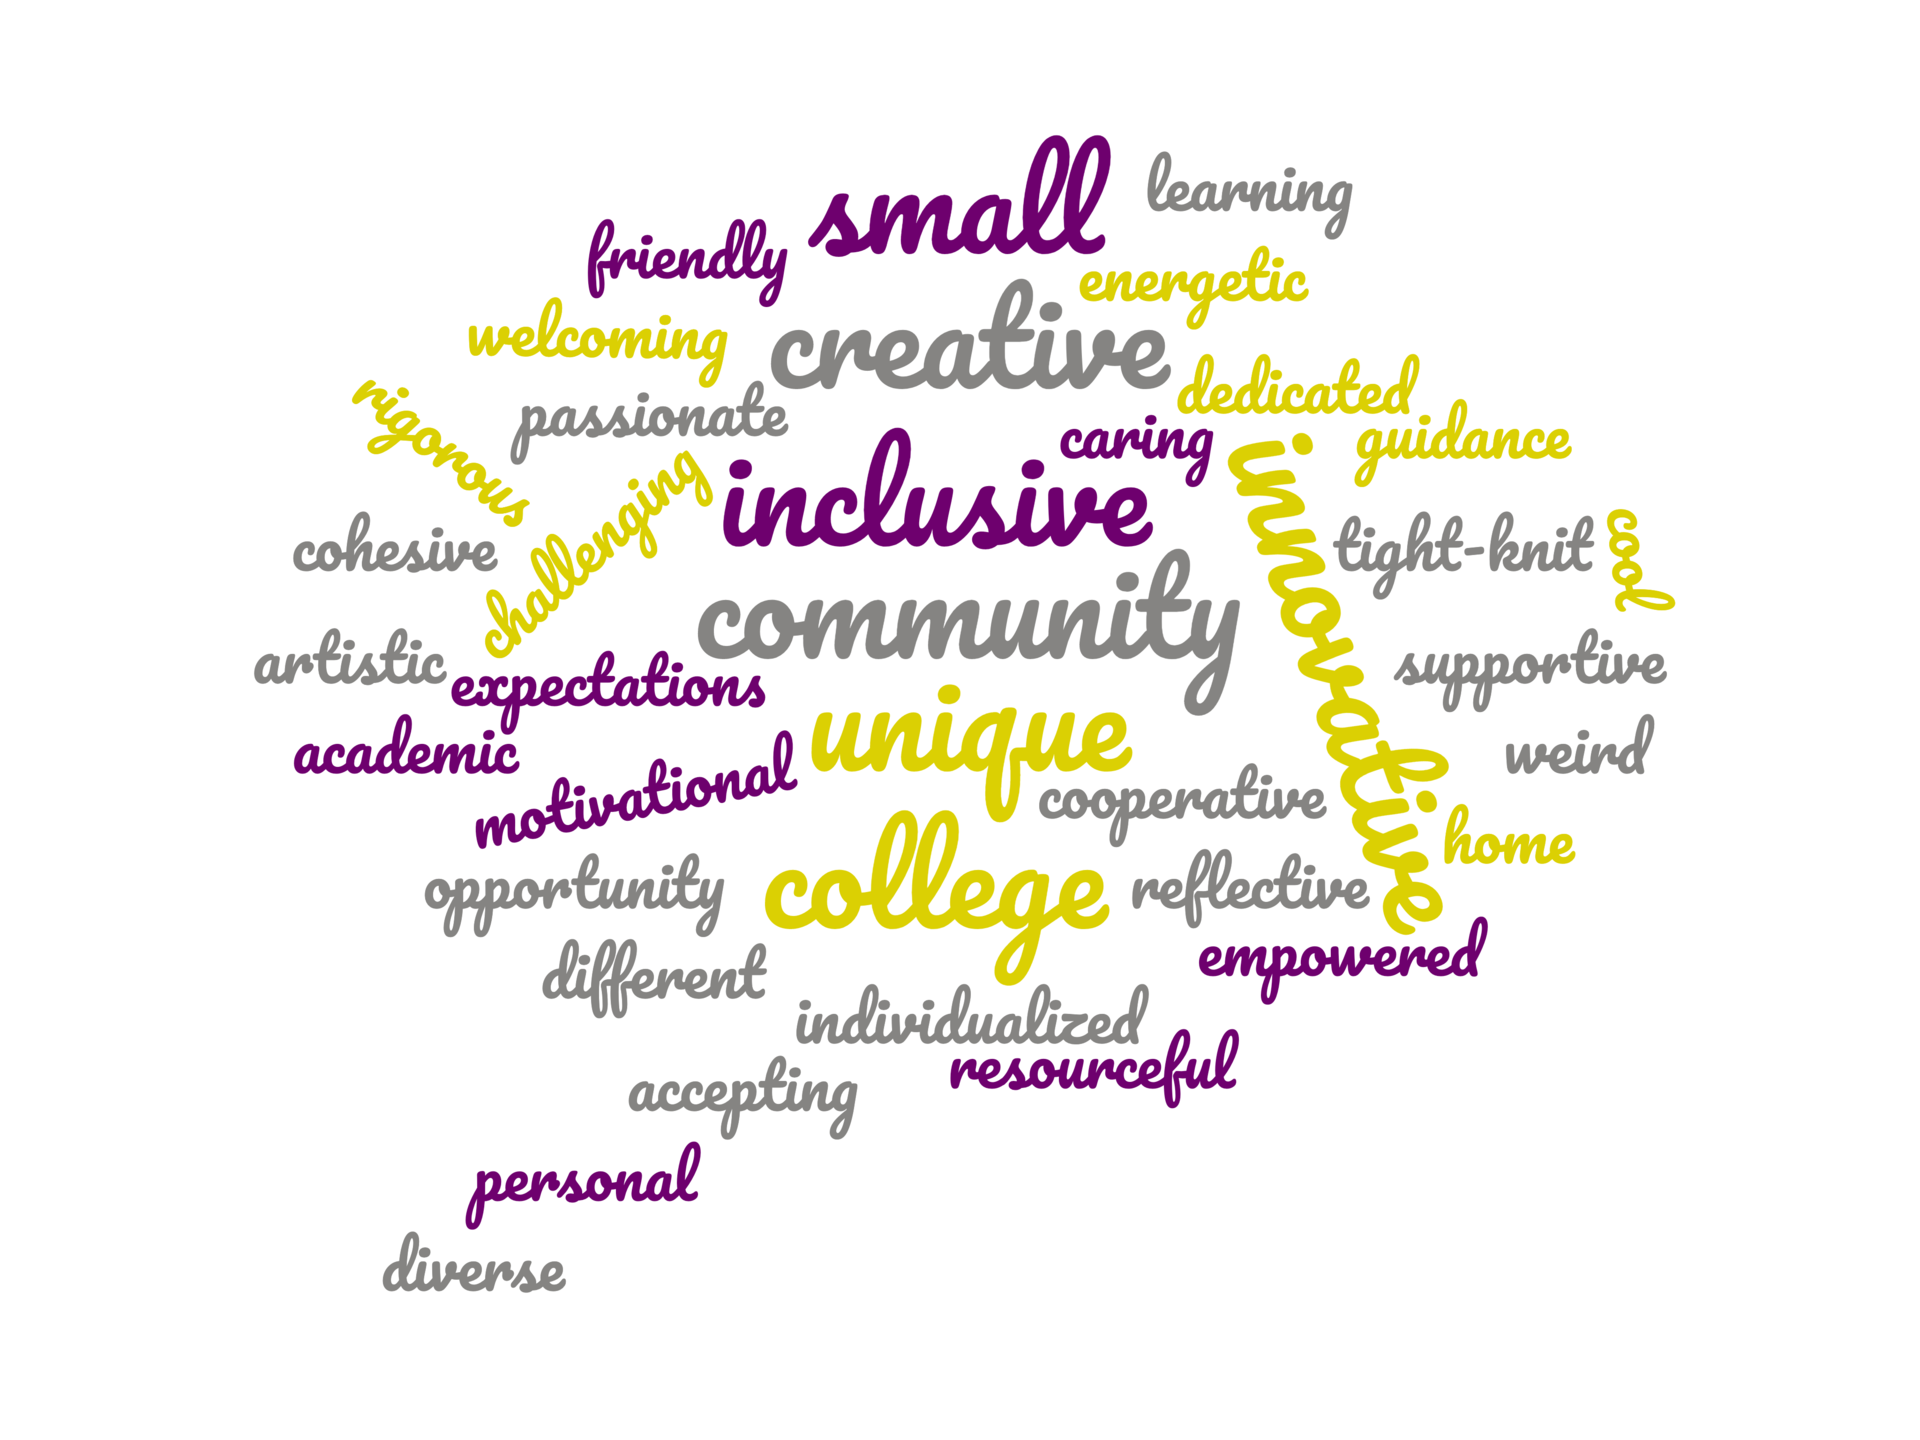 image is of a word cloud, shaped like a talking bubble; the word cloud is made up of adjectives that describe BART